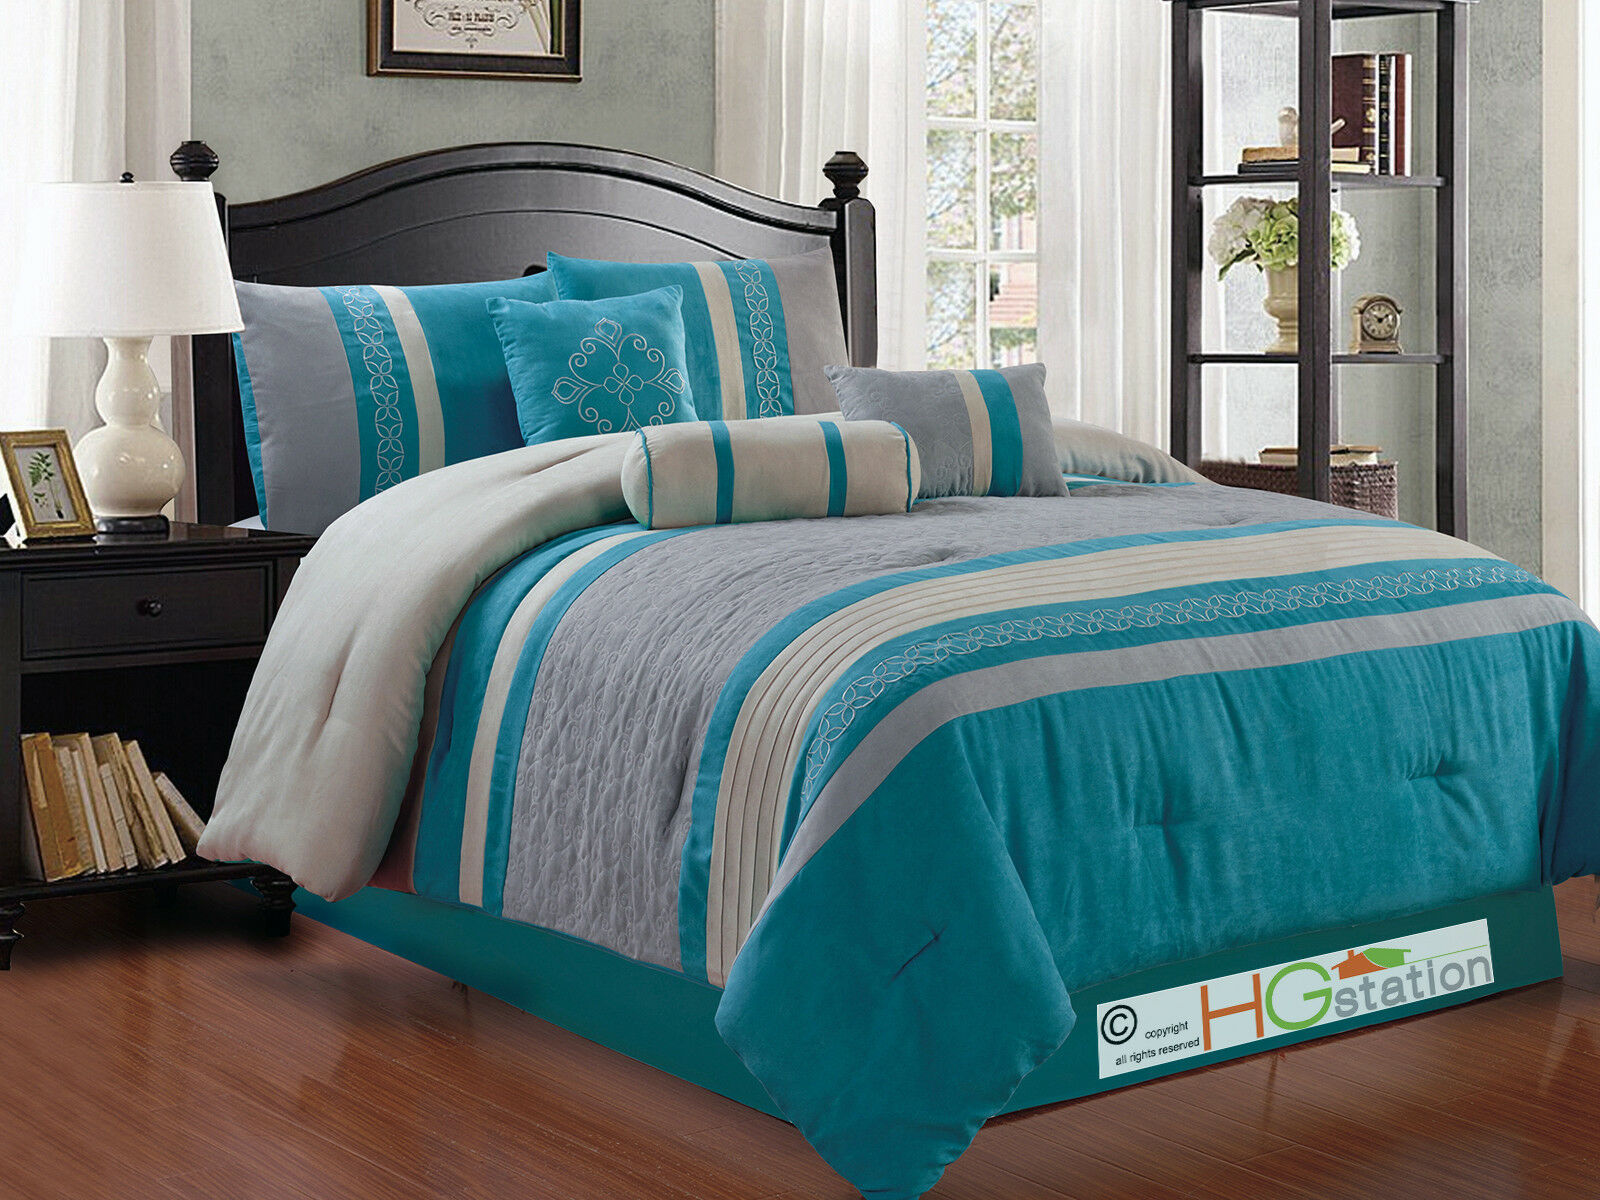 11-Pc Quilted Damask Medallion Faux Suede Comforter Curtain Set blu grigio King